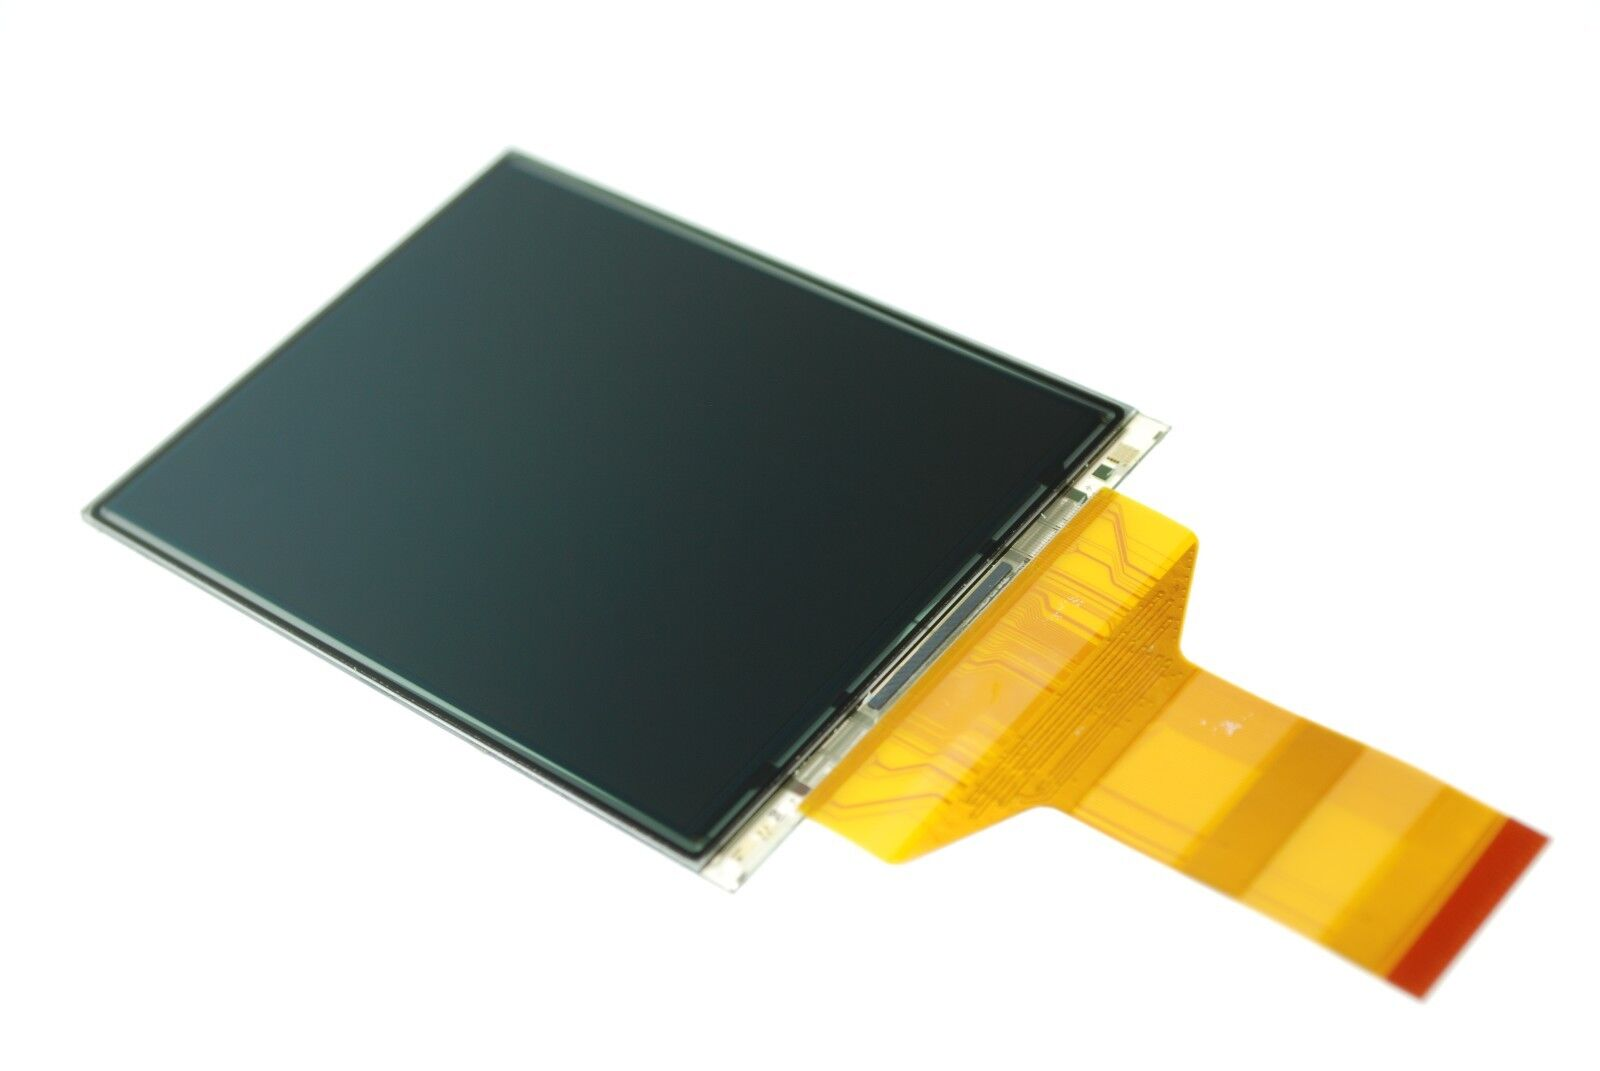 Lcd Display Screen For Nikon Coolpix S9400 S9500 Aw110 Aw...